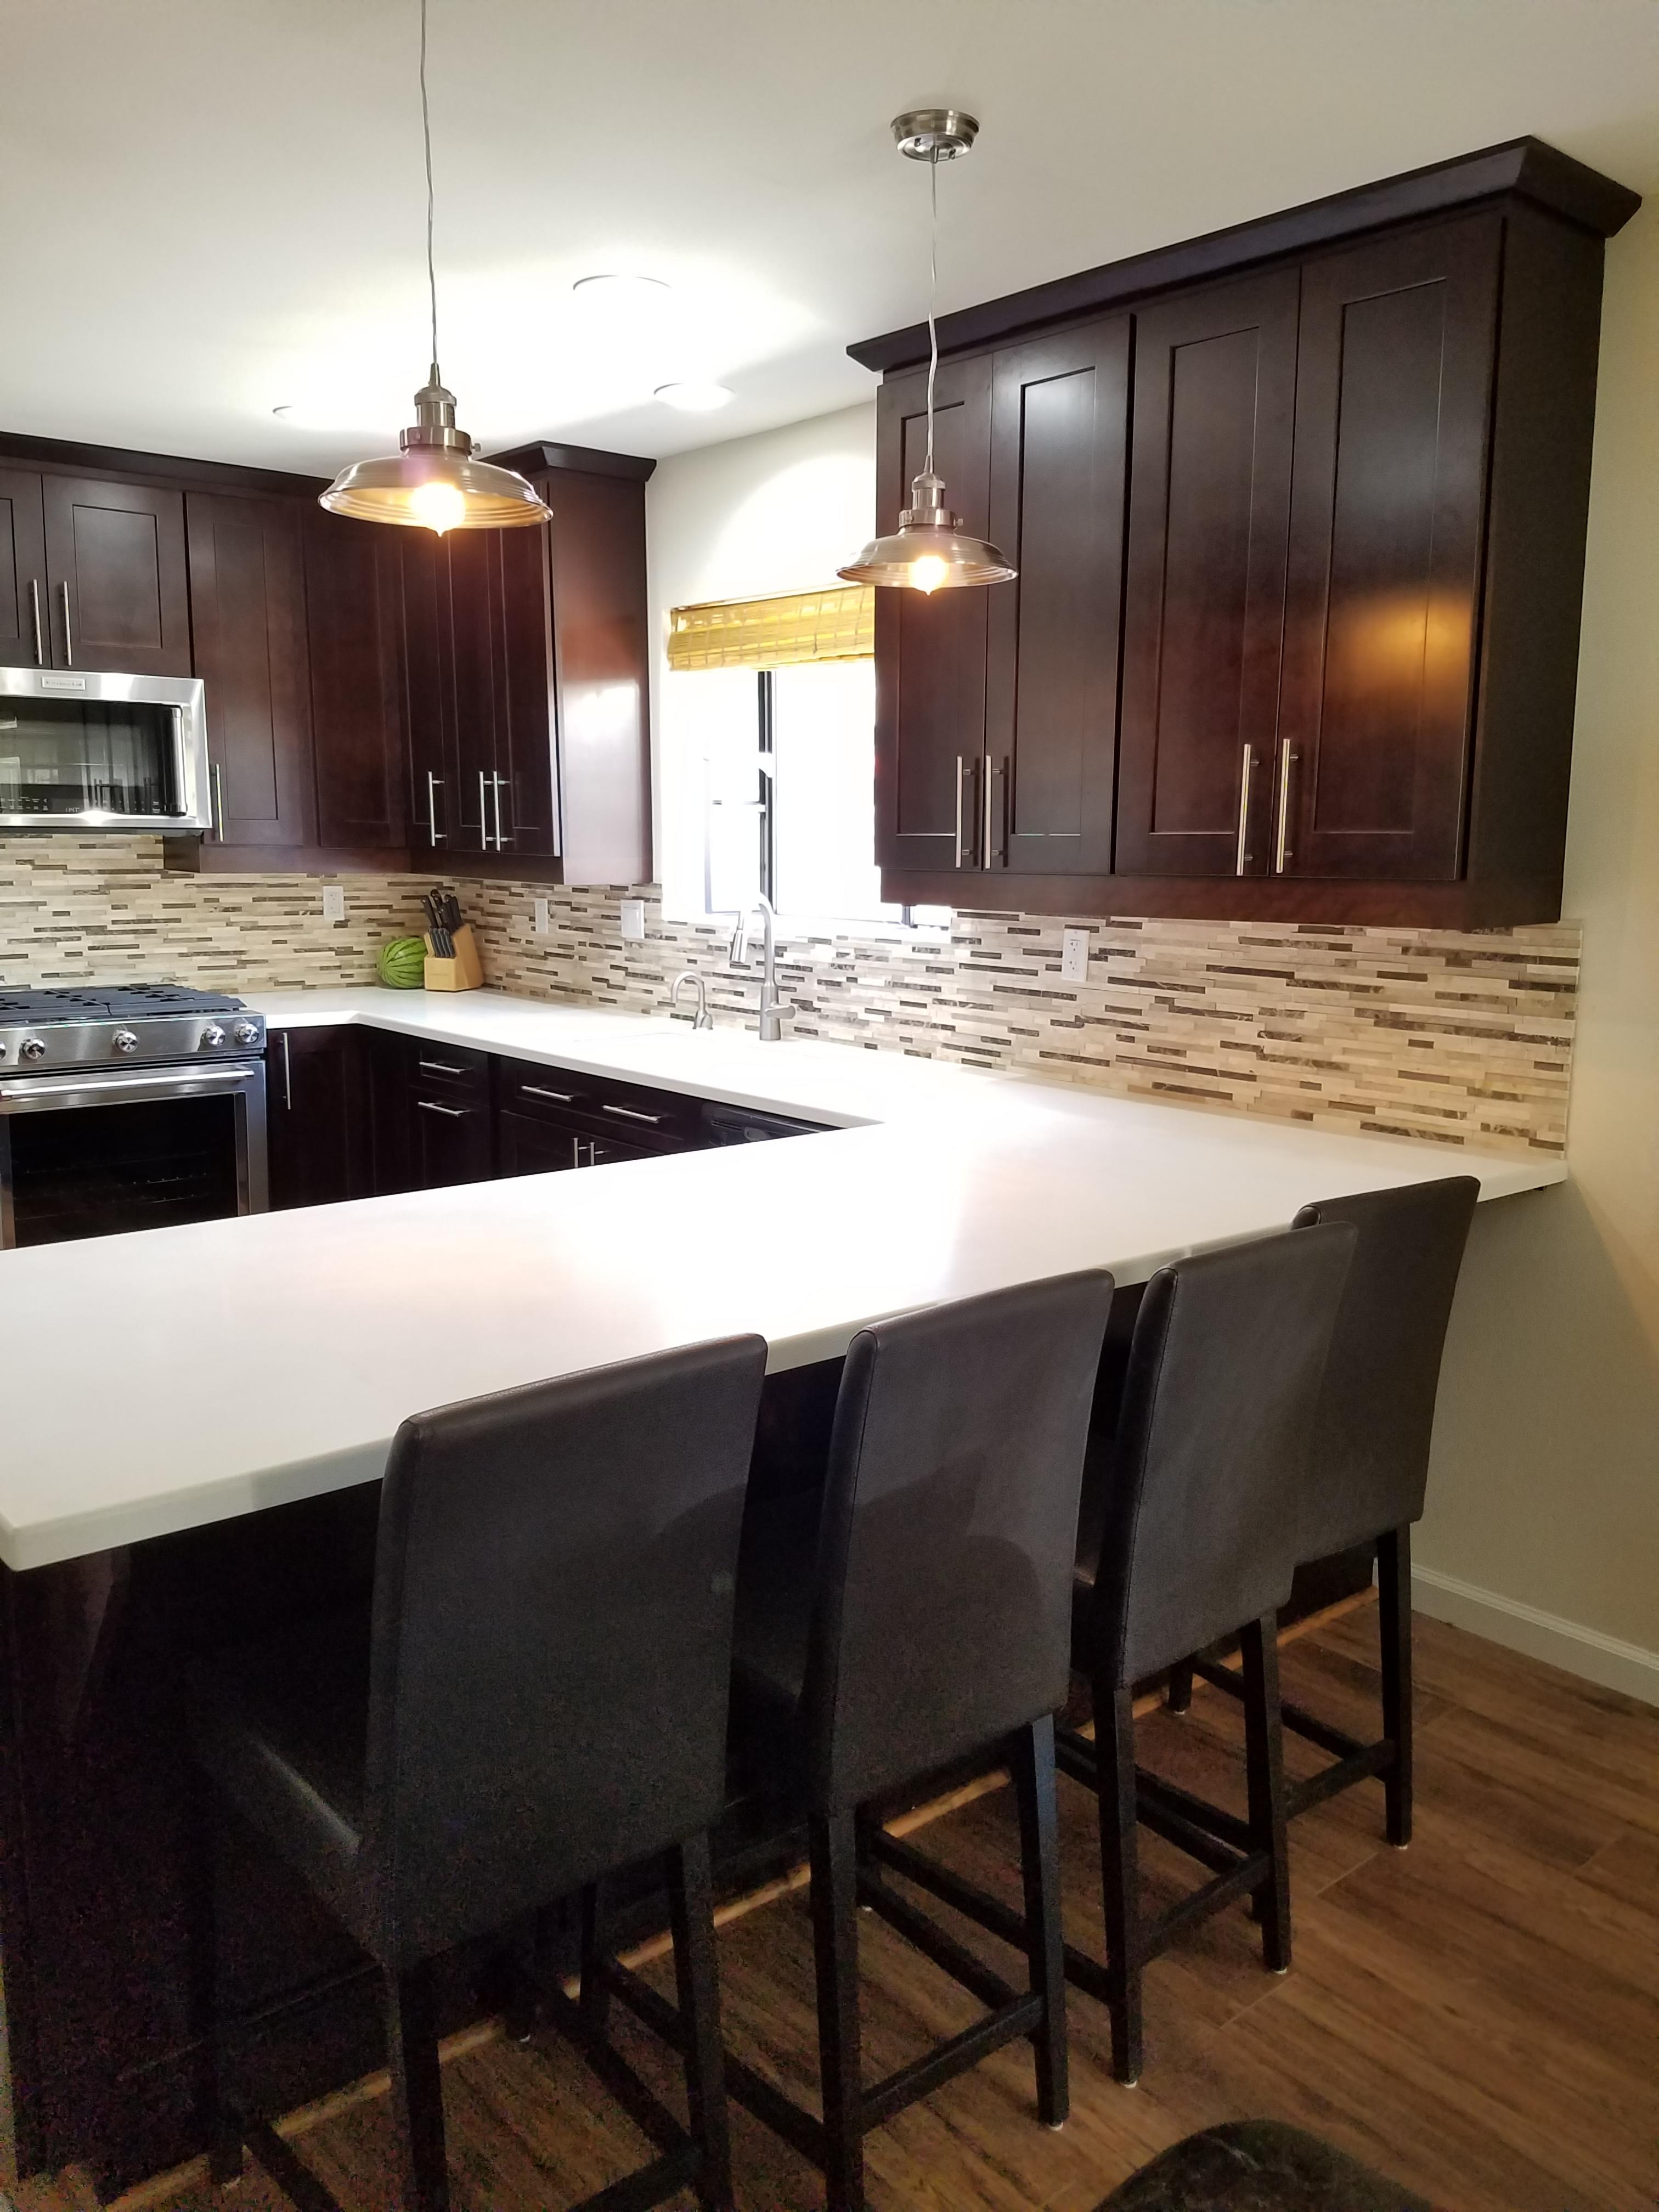 A Best Remodeling image 5